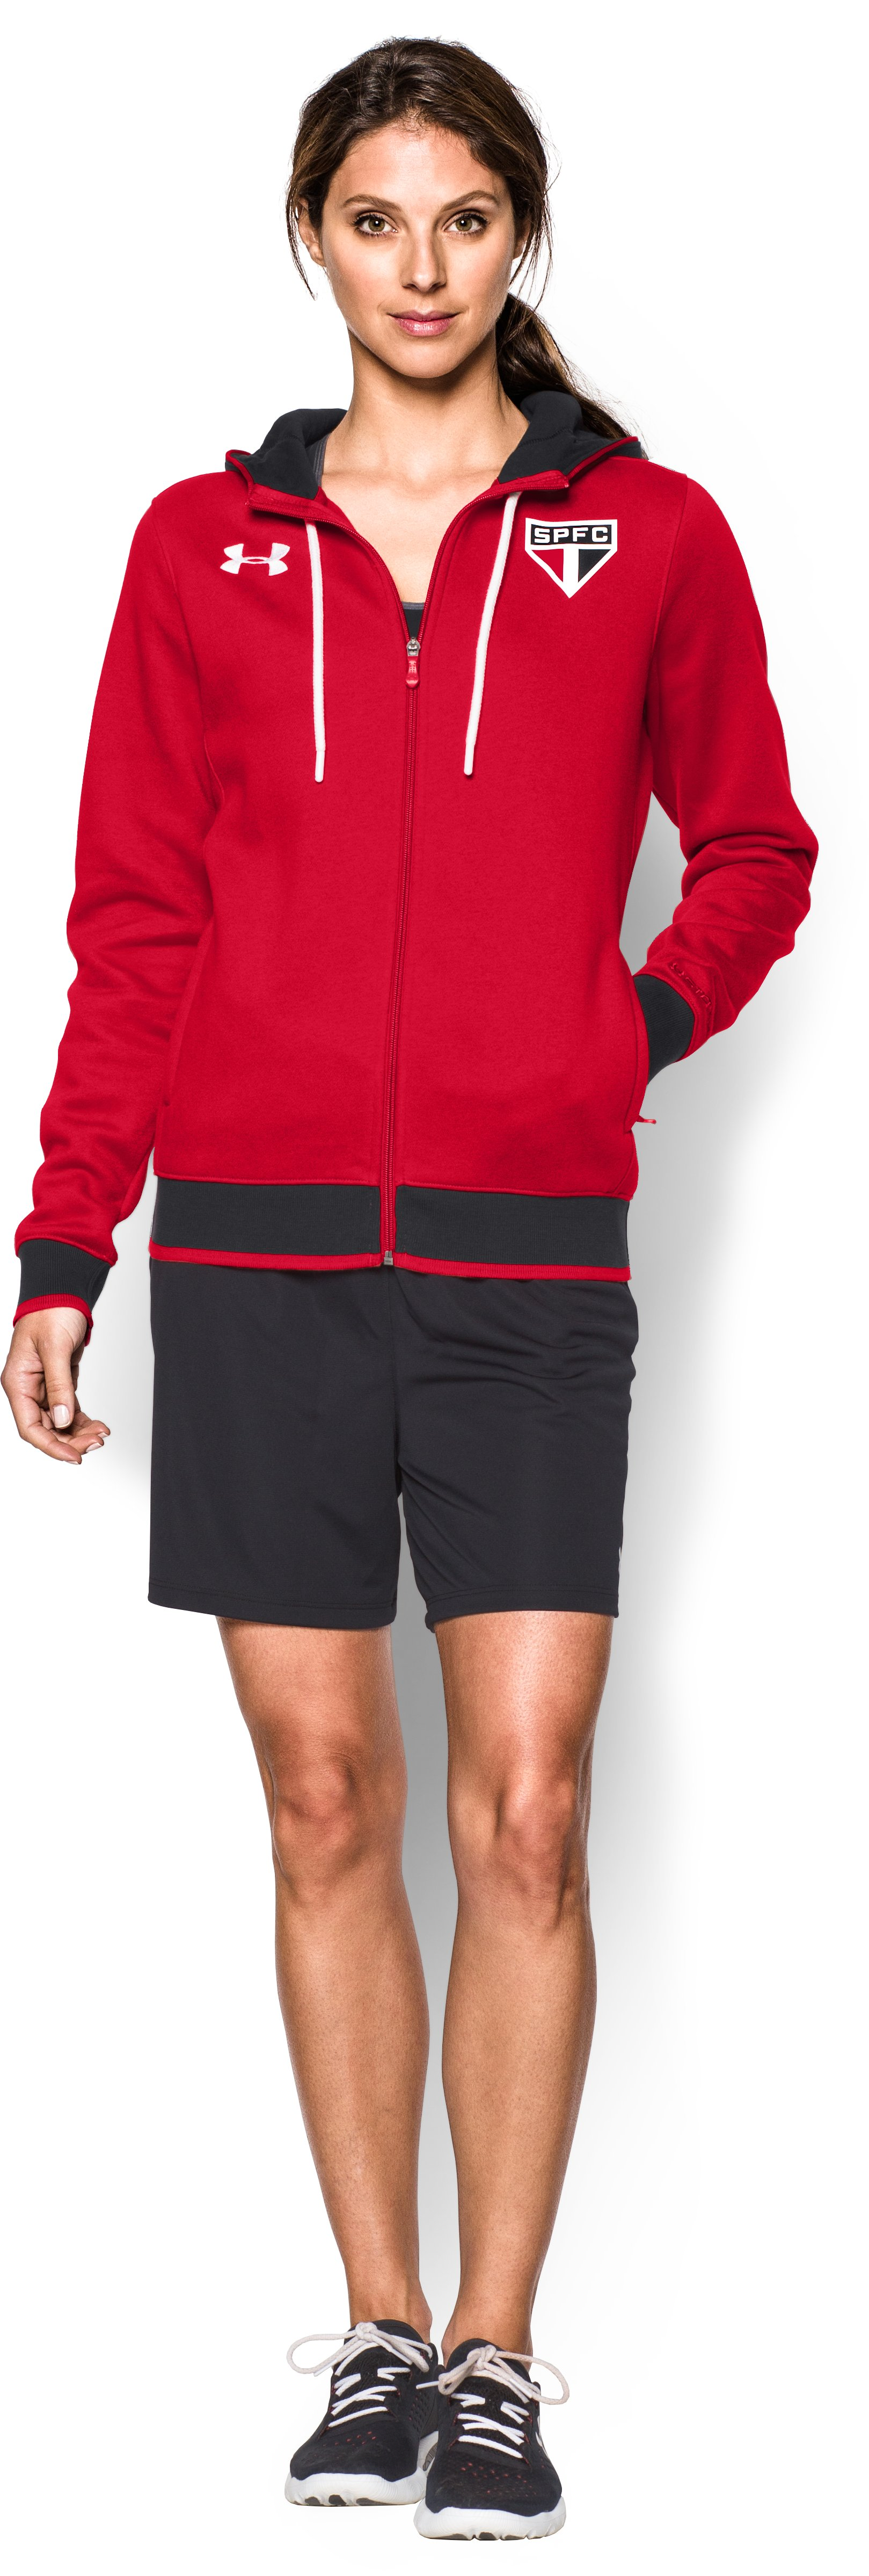 Women's Sao Paulo 15/16 Storm Full Zip Hoodie, Red, Front